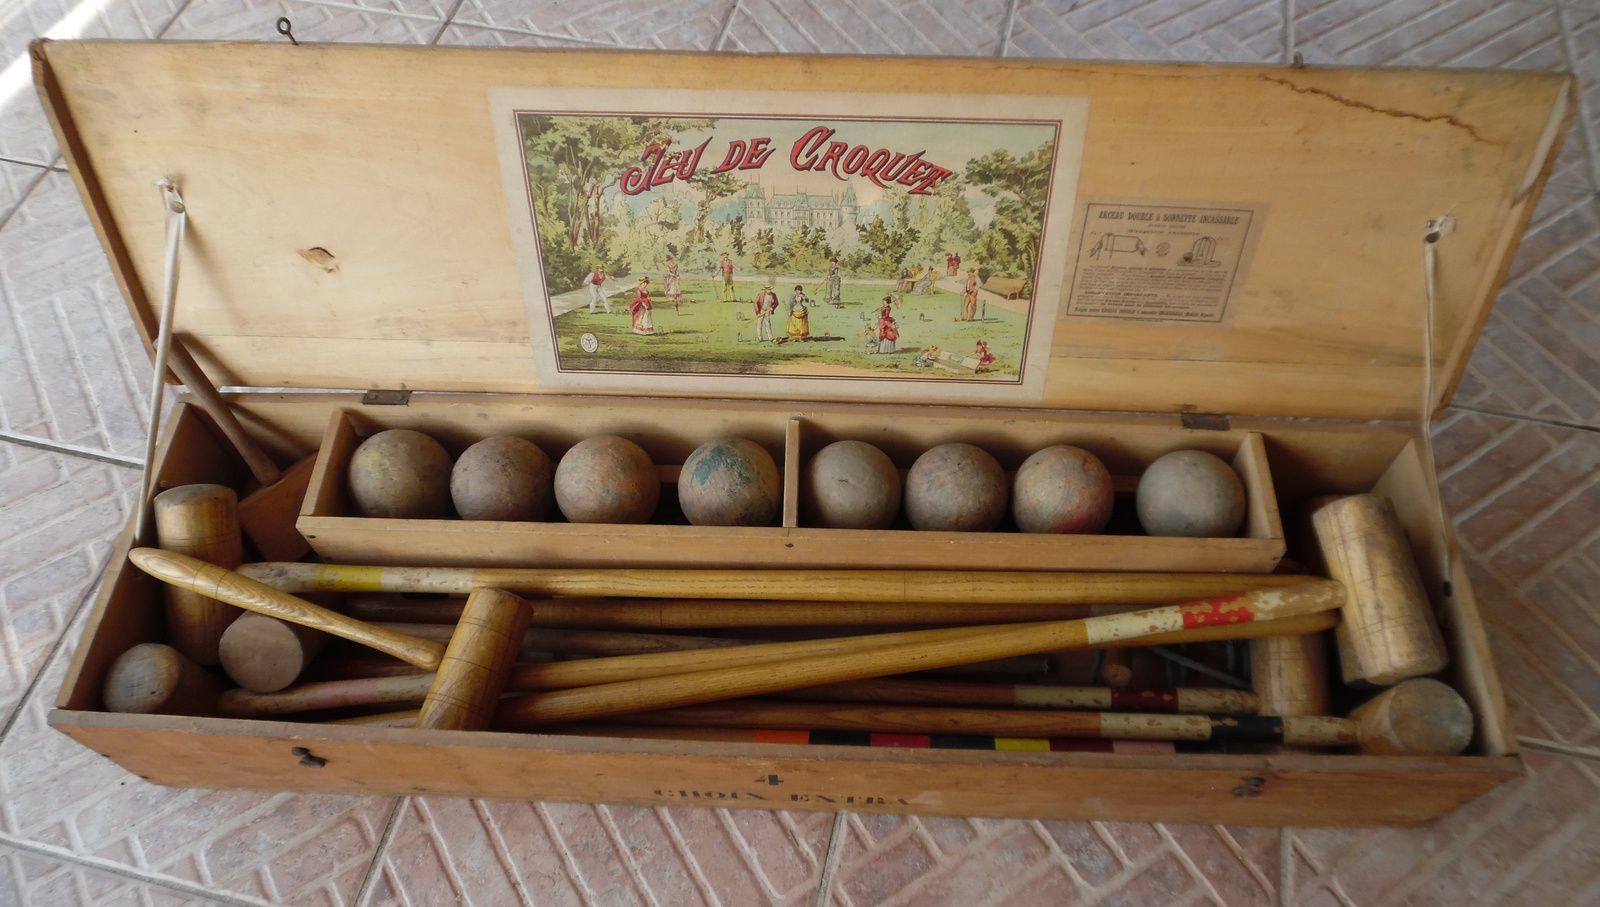 Jeu croquet bois for Salon du bois paris